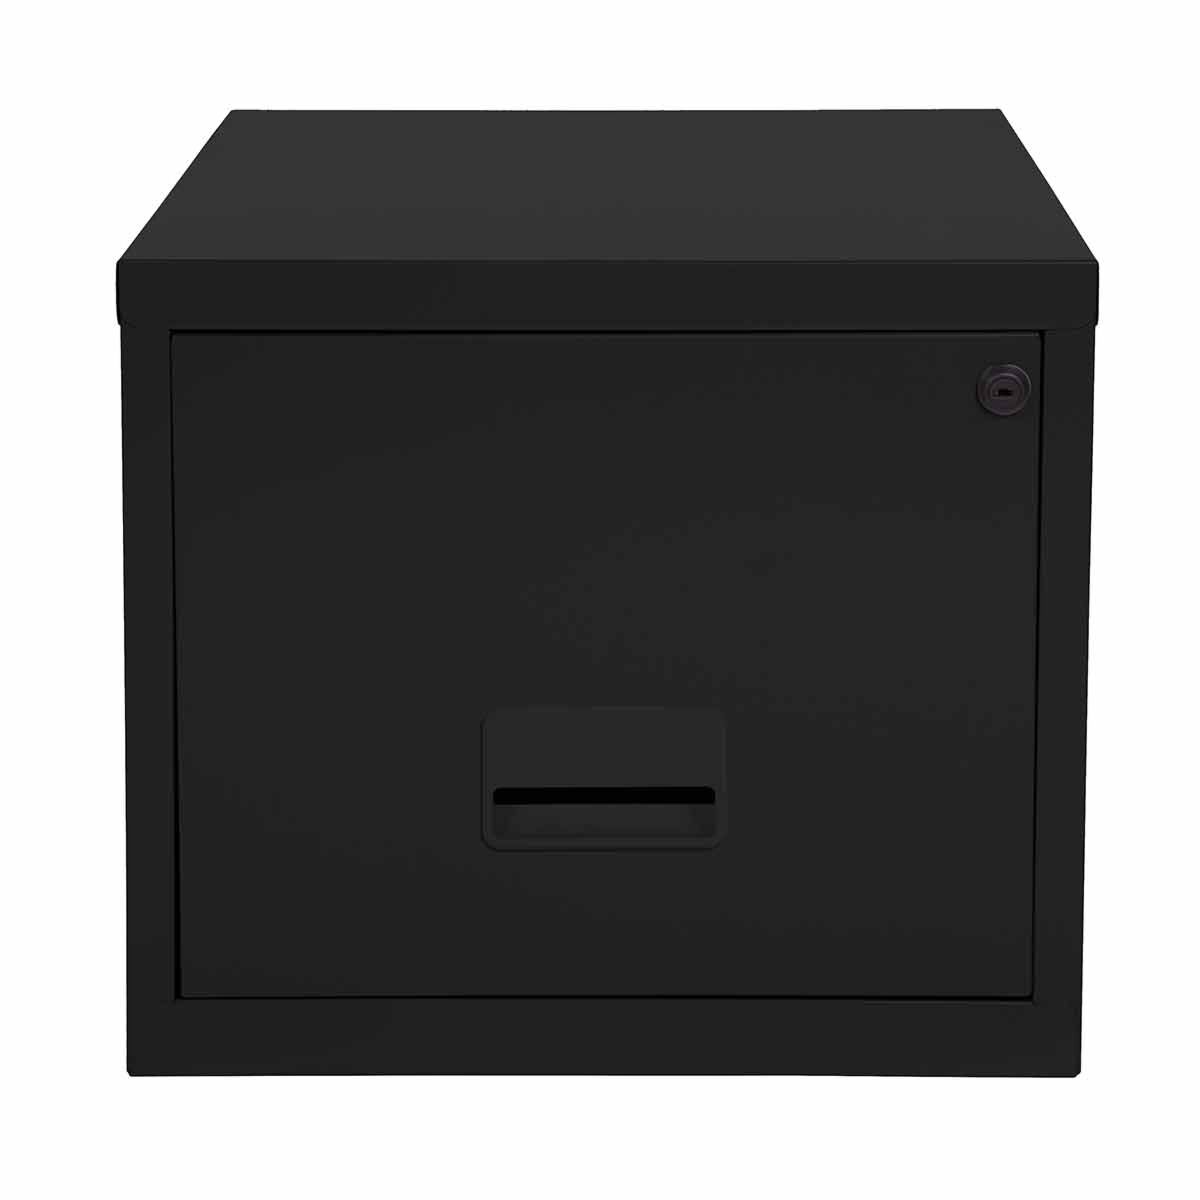 Pierre Henry A4 1 Drawer Stackable Maxi Filing Cabinet